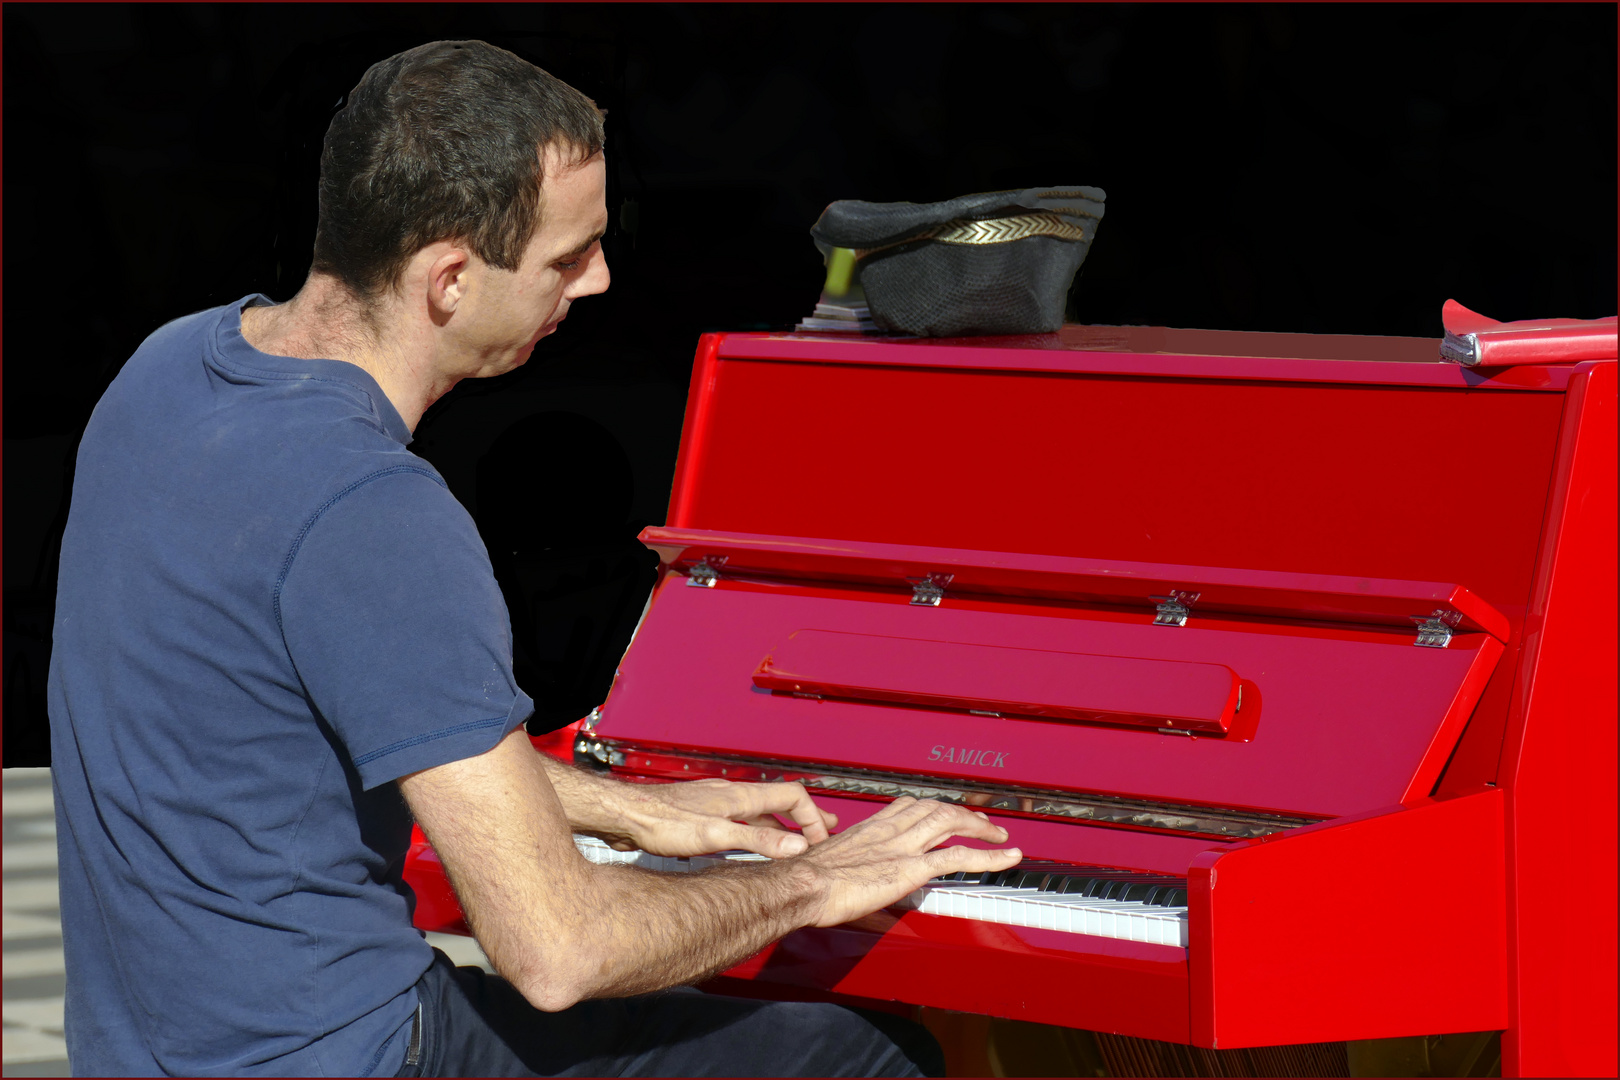 le piano rouge..